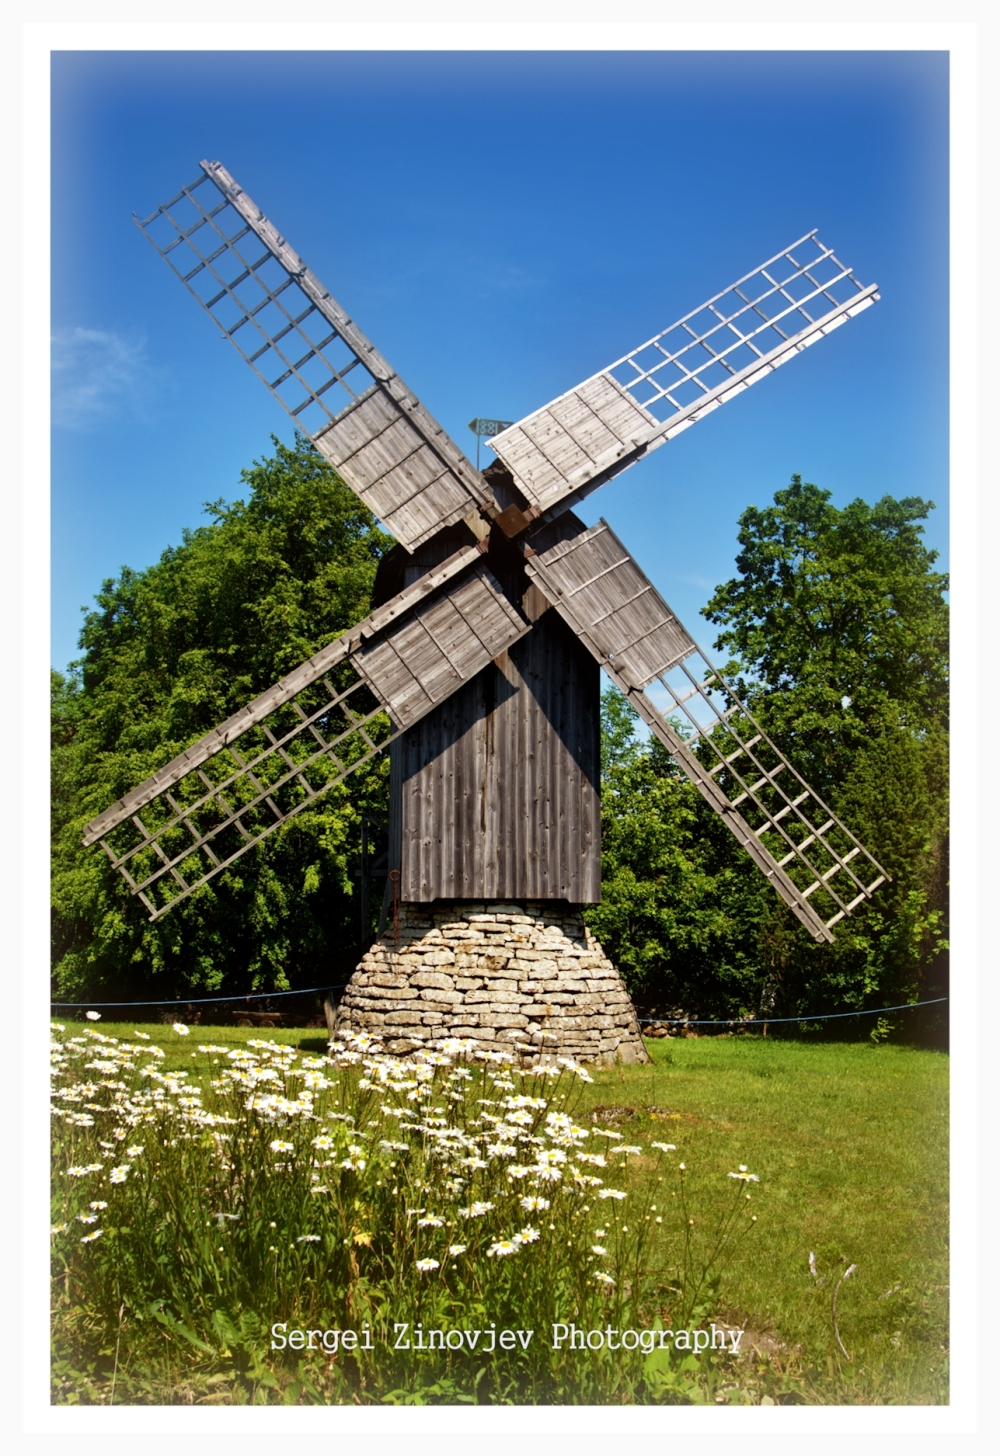 Historical Eemu Windmill located at Muhu Island